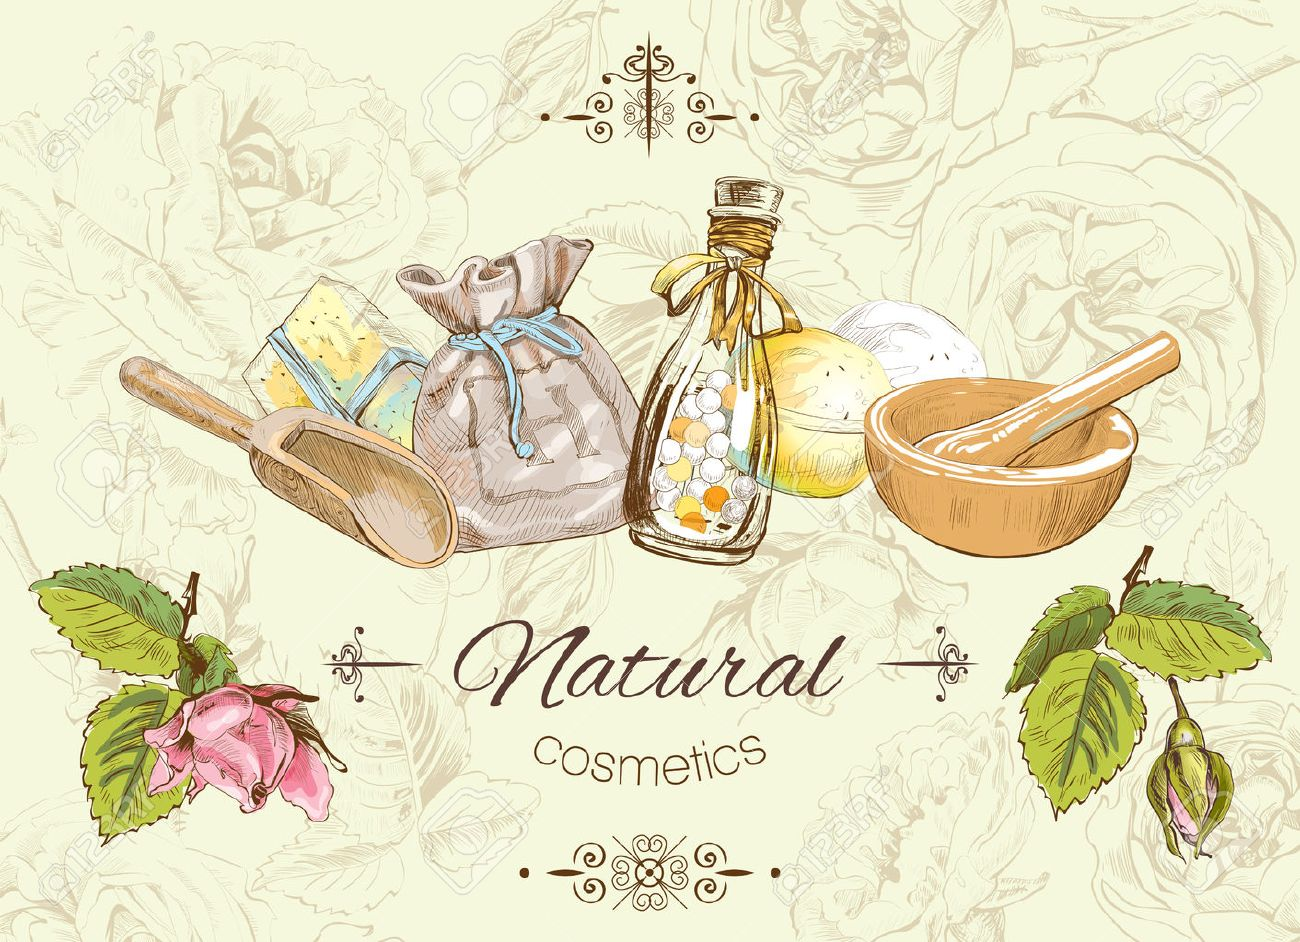 Vector natural banner with wild flowers and herbs. Background design for cosmetics, store, beauty salon, natural and organic products. Can be used as logo design - 57793636